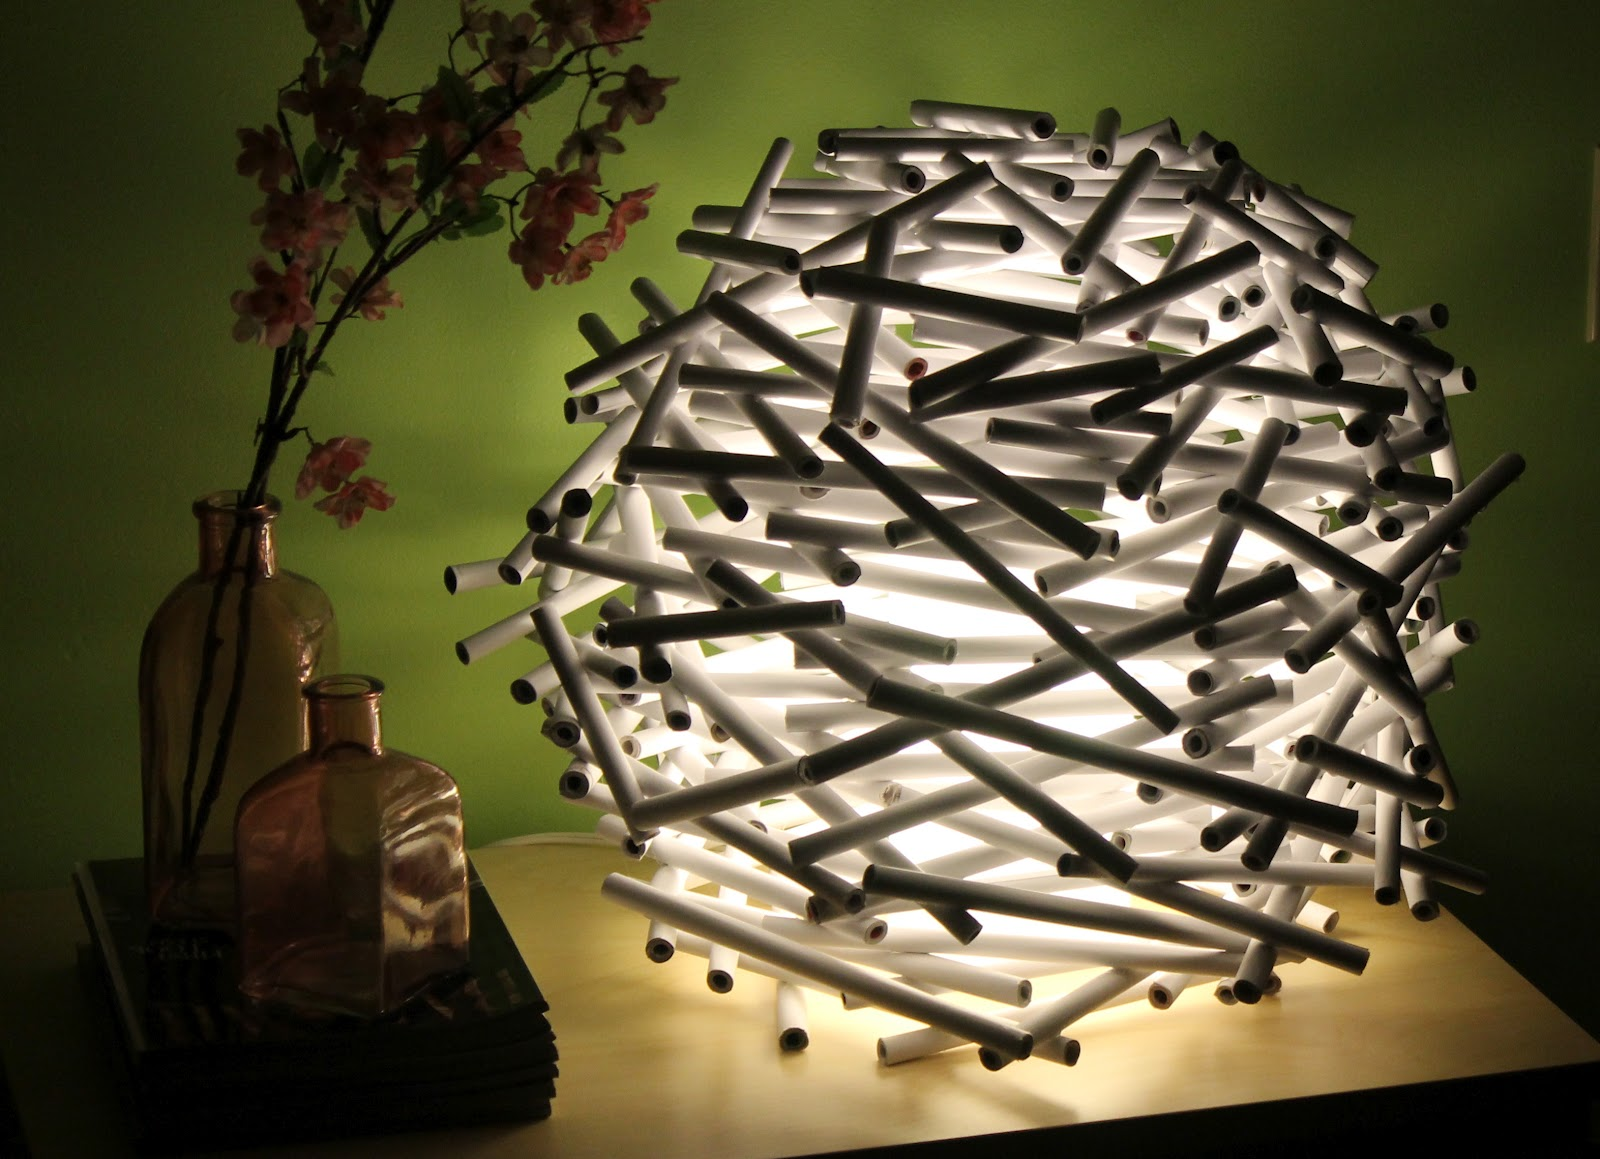 15. Glue PVC sticks in a round shape and add some light for an interesting effect